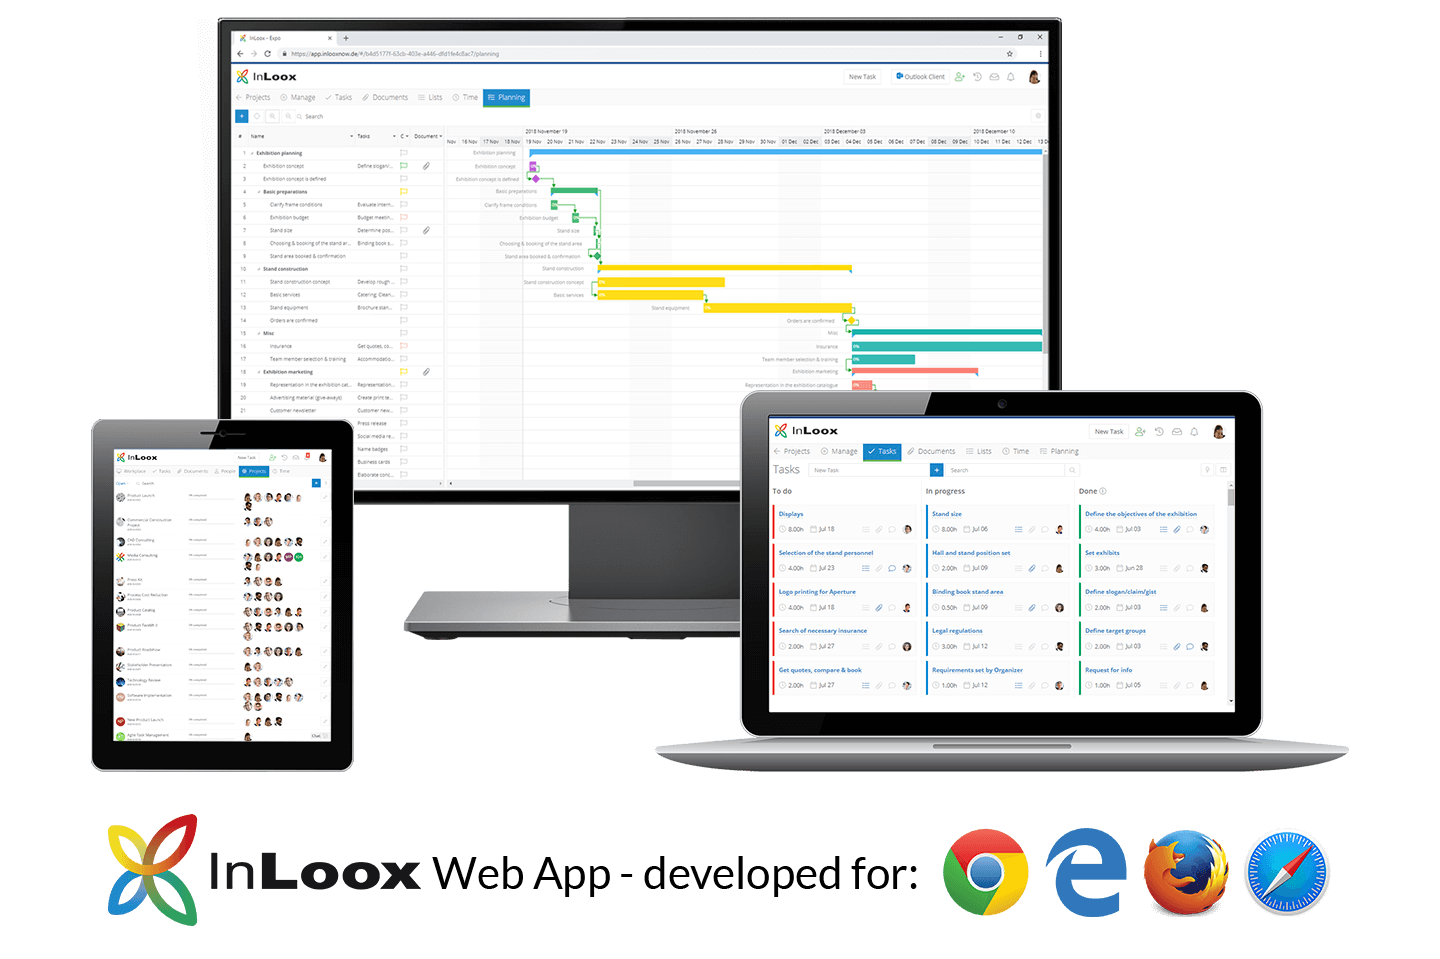 InLoox Web App - The Project Management Software on the Web